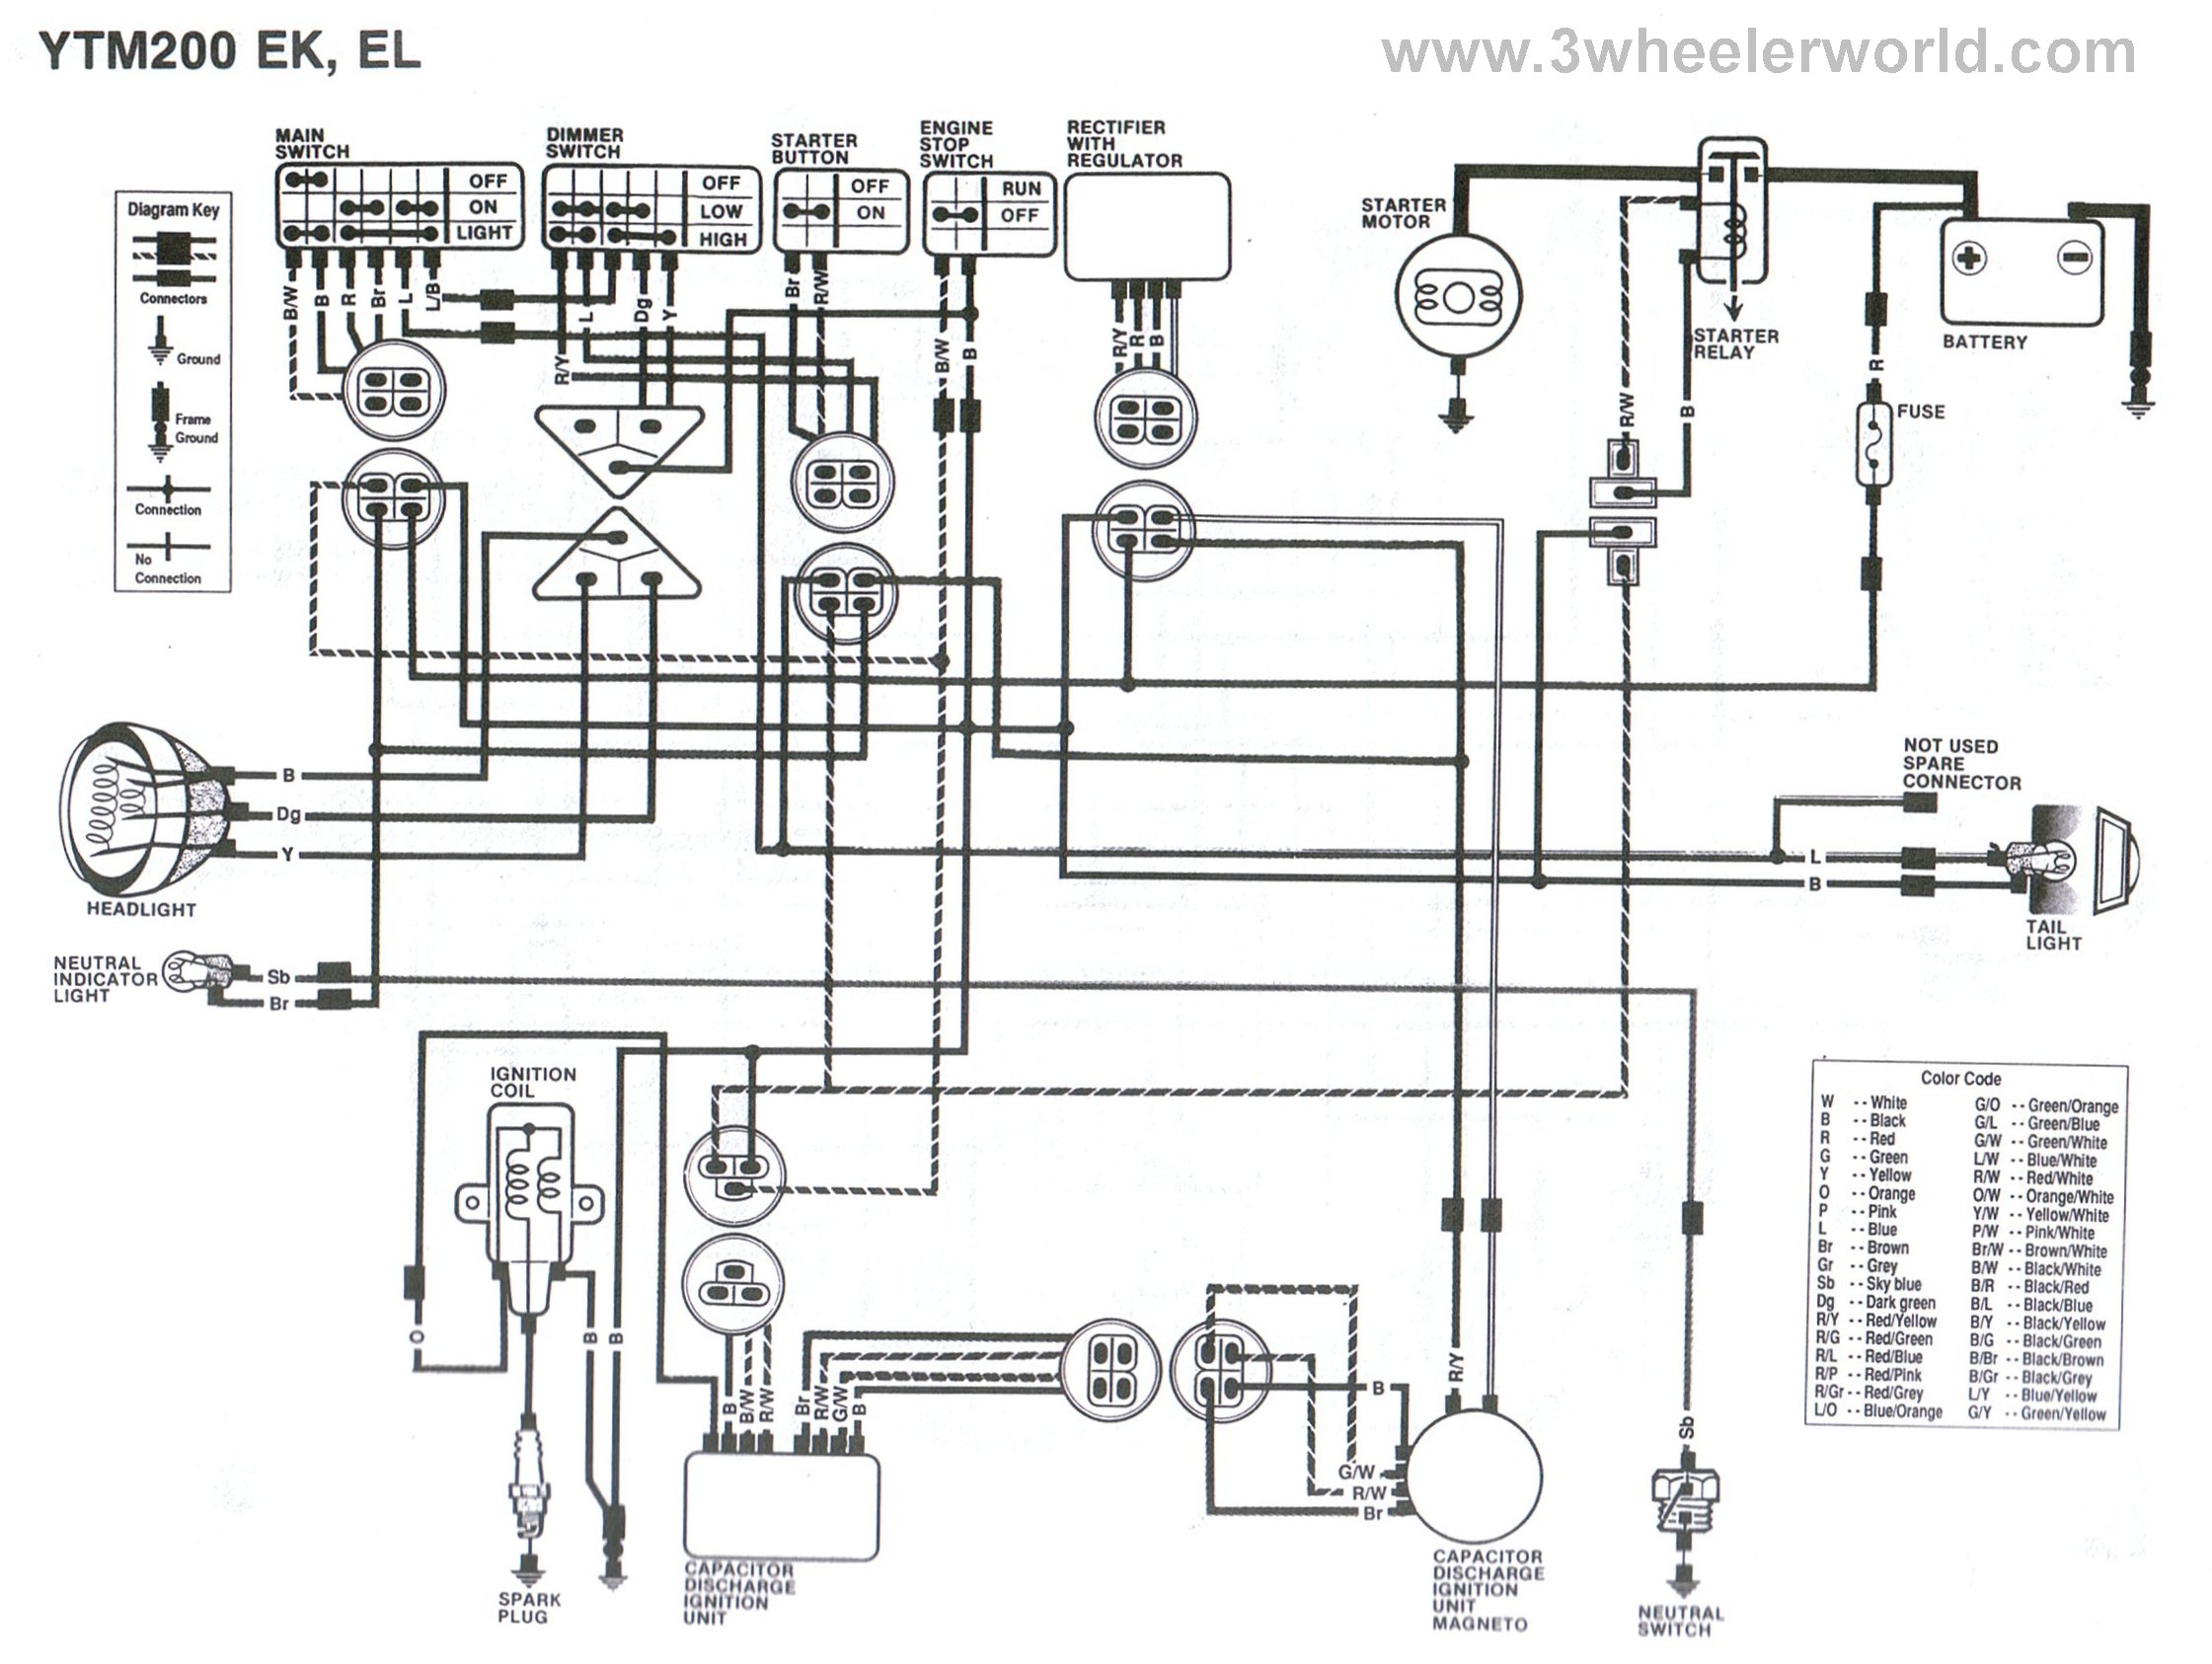 yamaha ag 100 wiring diagram data wiring diagrams u2022 rh naopak co Yamaha Outboard Gauge Wiring Diagram yamaha 200 hp outboard wiring diagram